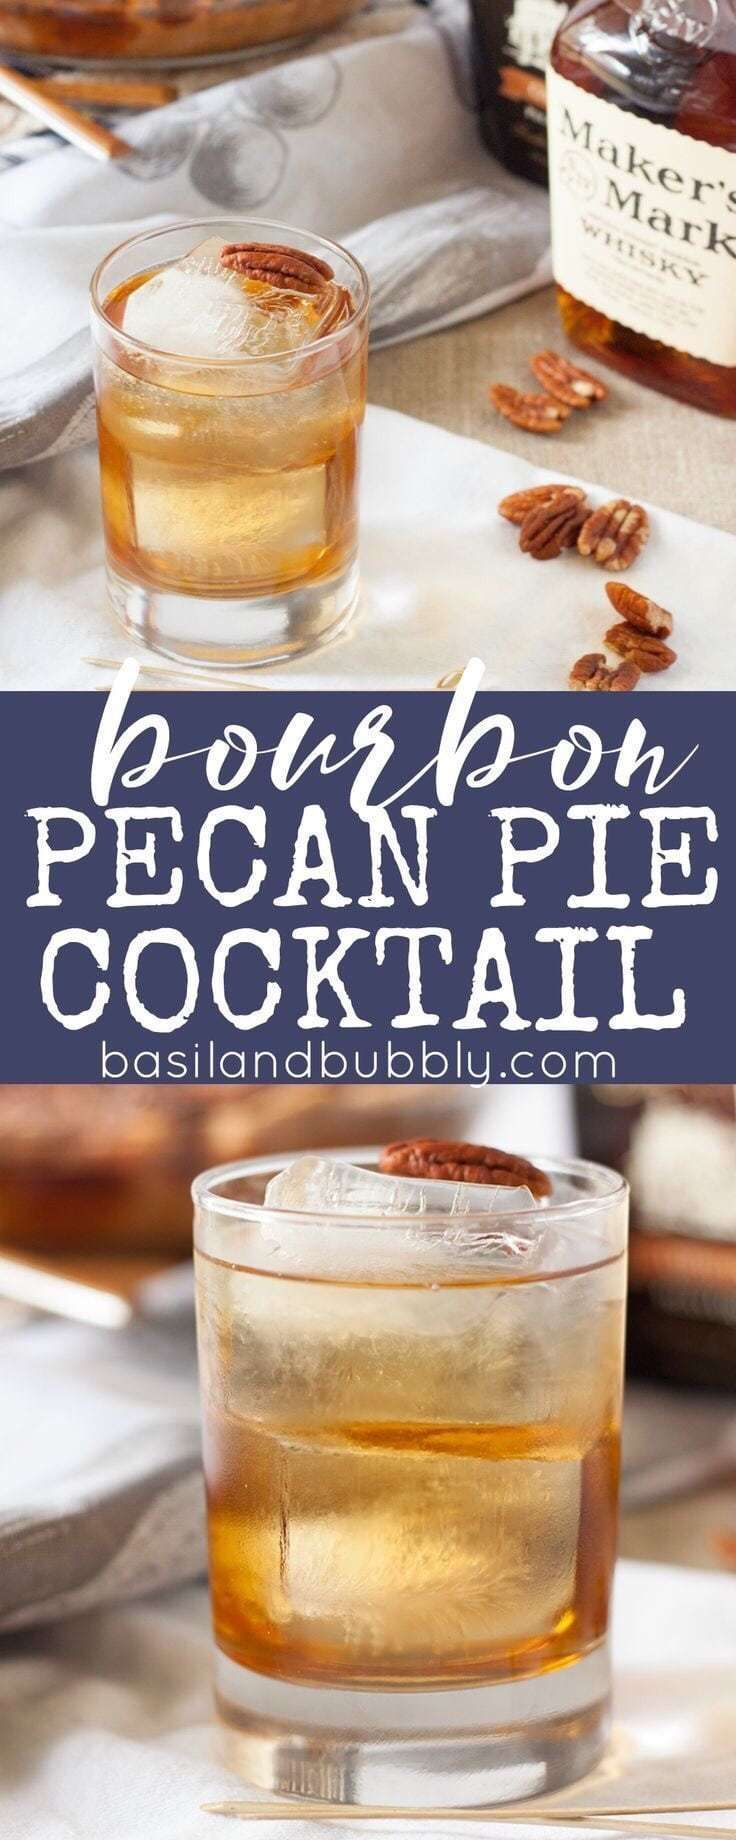 Bourbon Pecan Pie Cocktail #thanksgivingdrinksalcohol